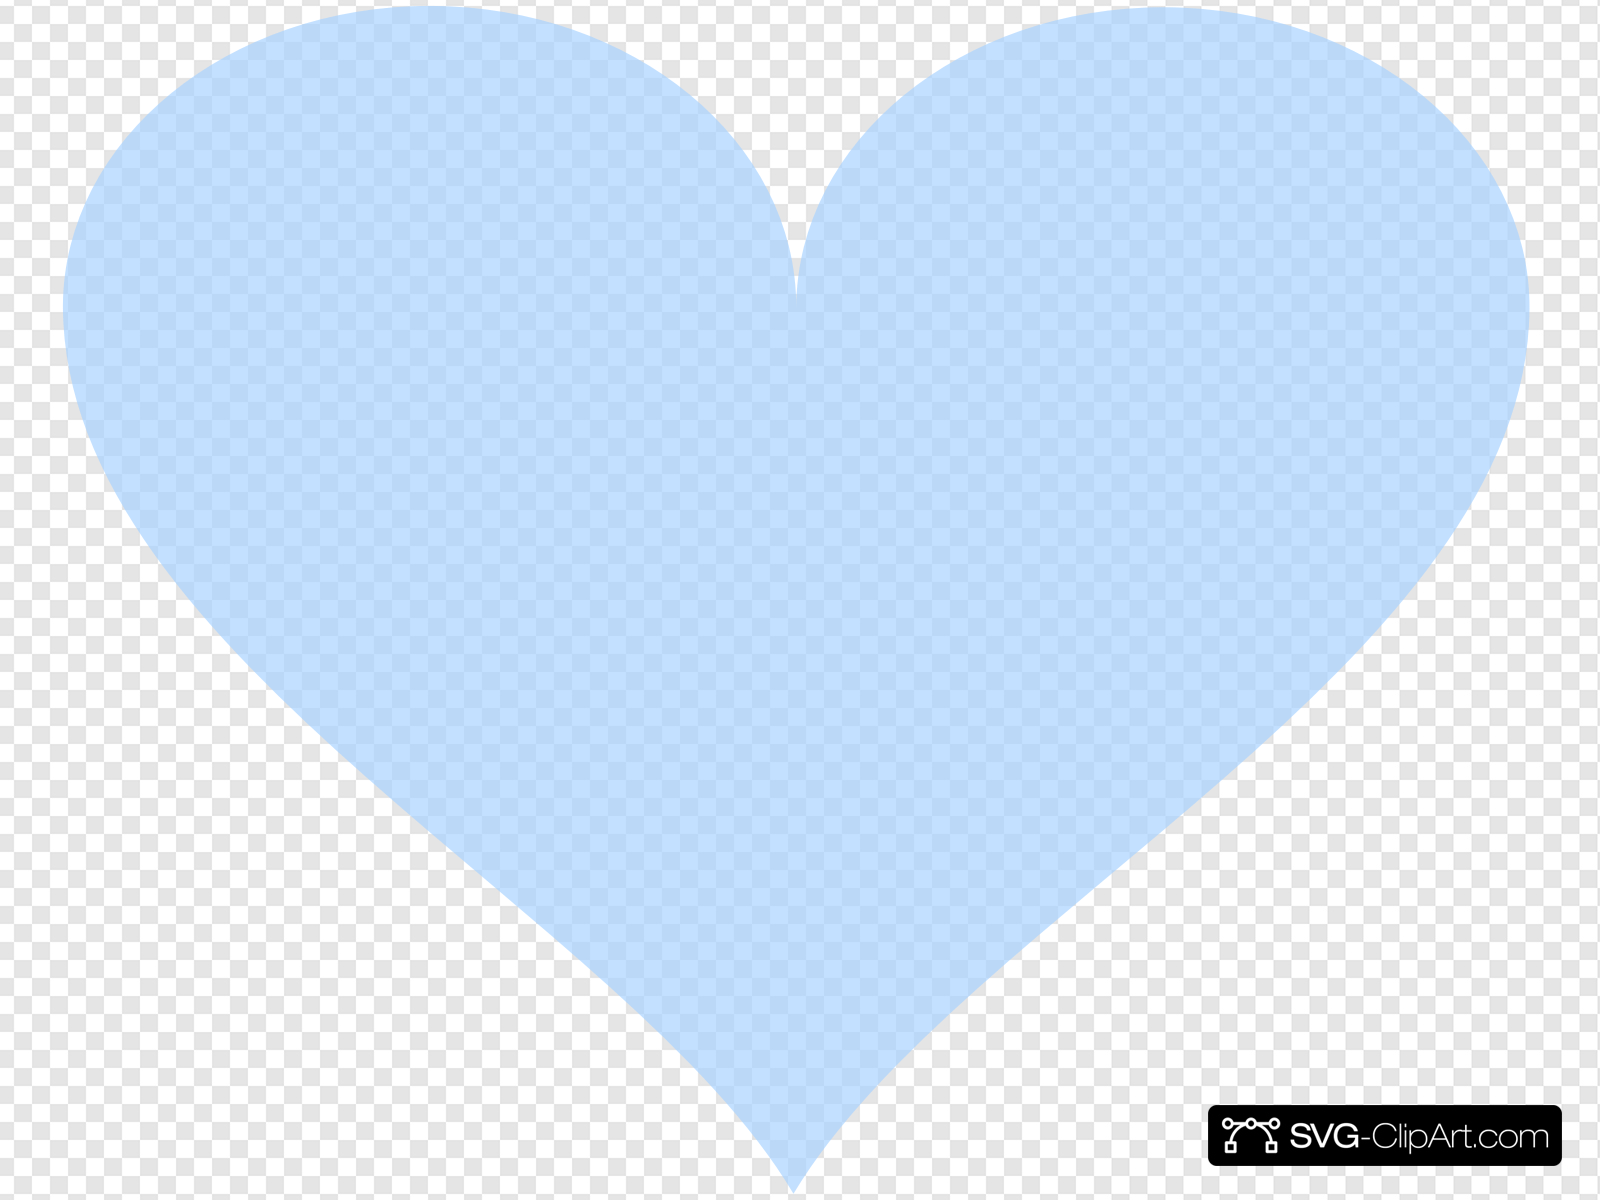 Light Blue Heart Clip art, Icon and SVG.